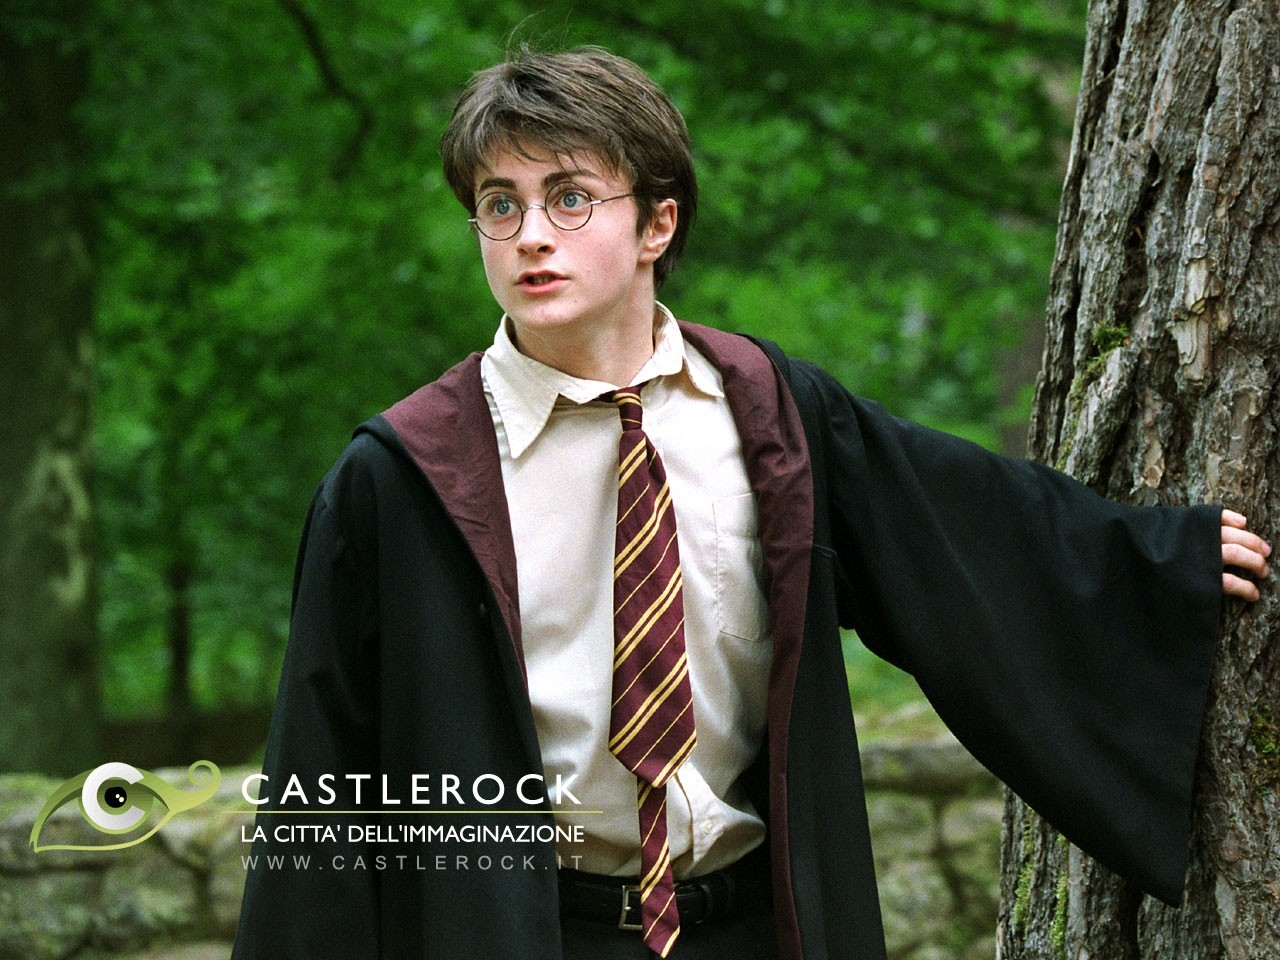 Wallpaper del film Harry Potter e il prigioniero di Azkaban con una bella immagine di Daniel Radcliffe